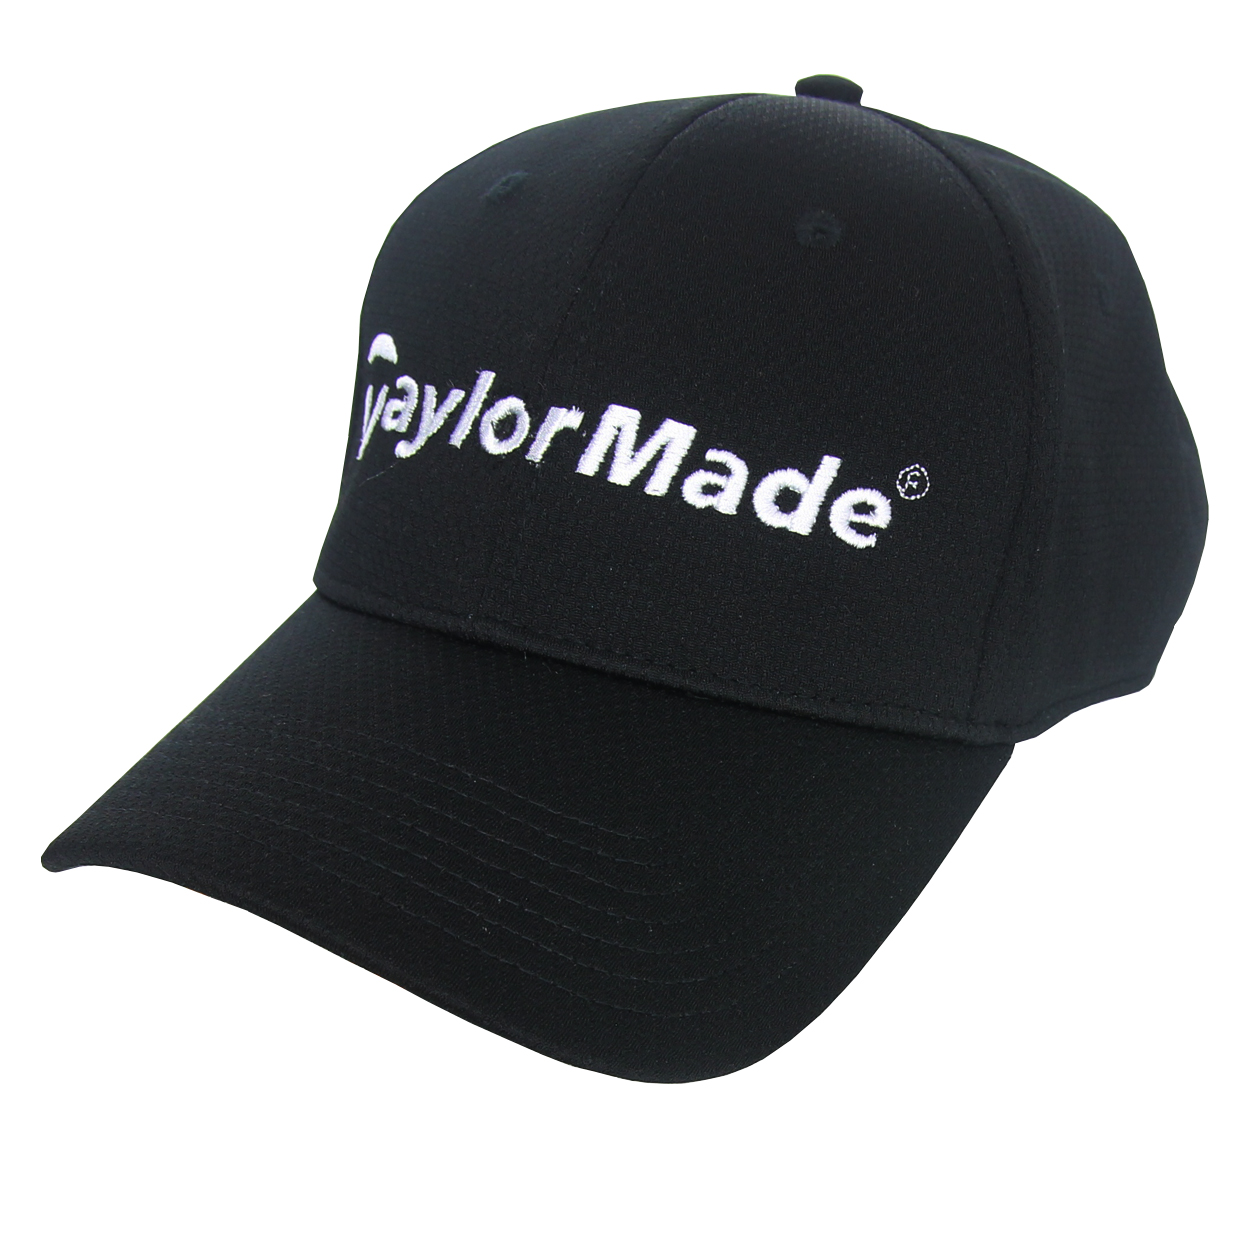 1701b27c0b9 TaylorMade Tour Cage Fitted Hat - GolfEtail.com